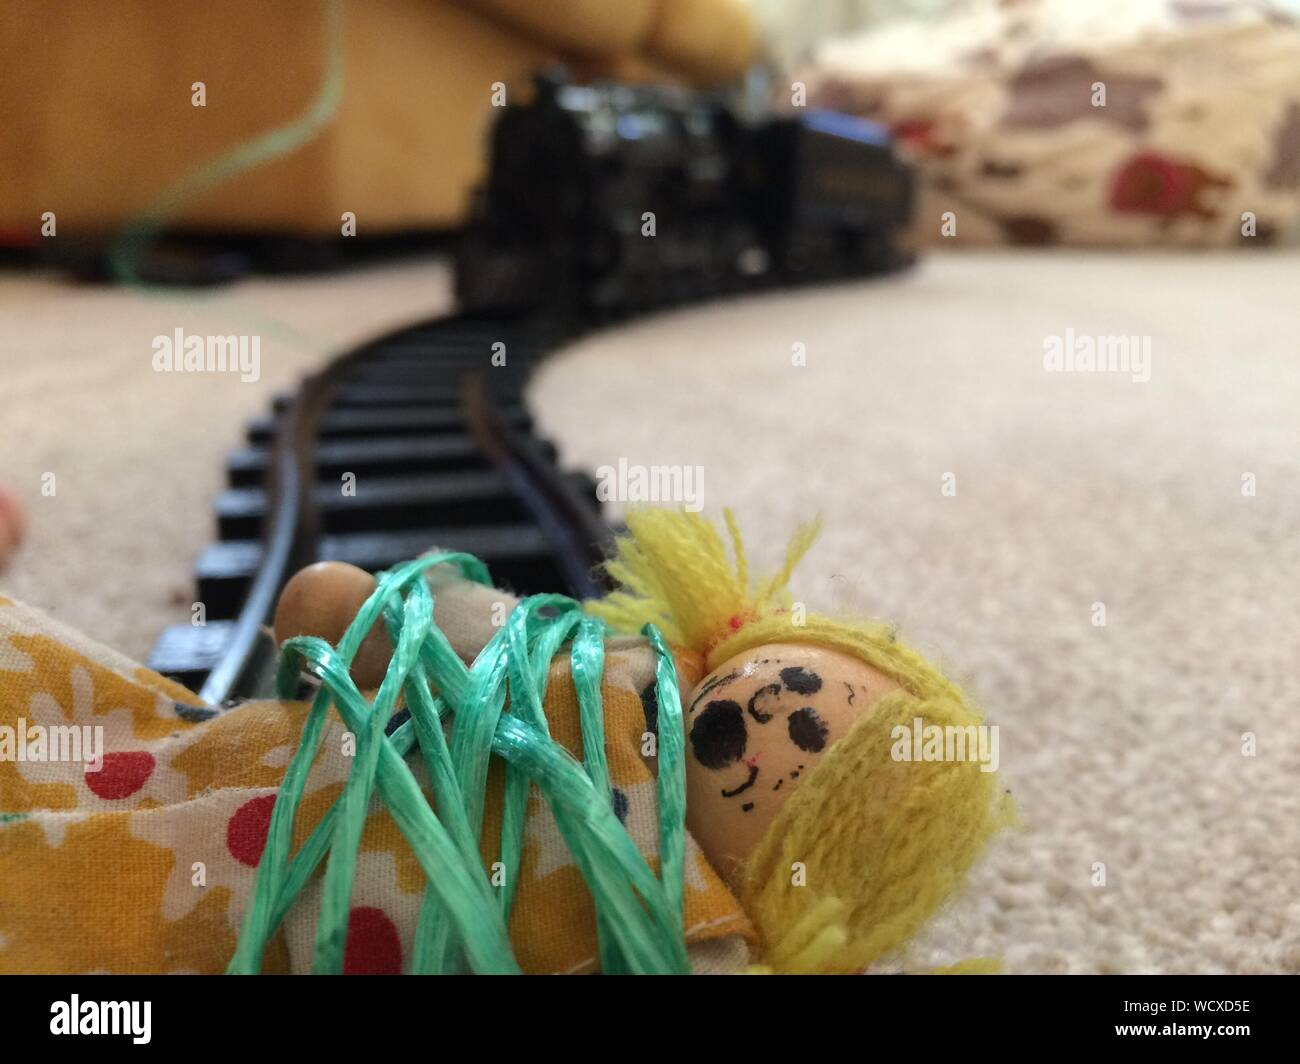 Doll Tied On Toy Train On Track At Home Stock Photo